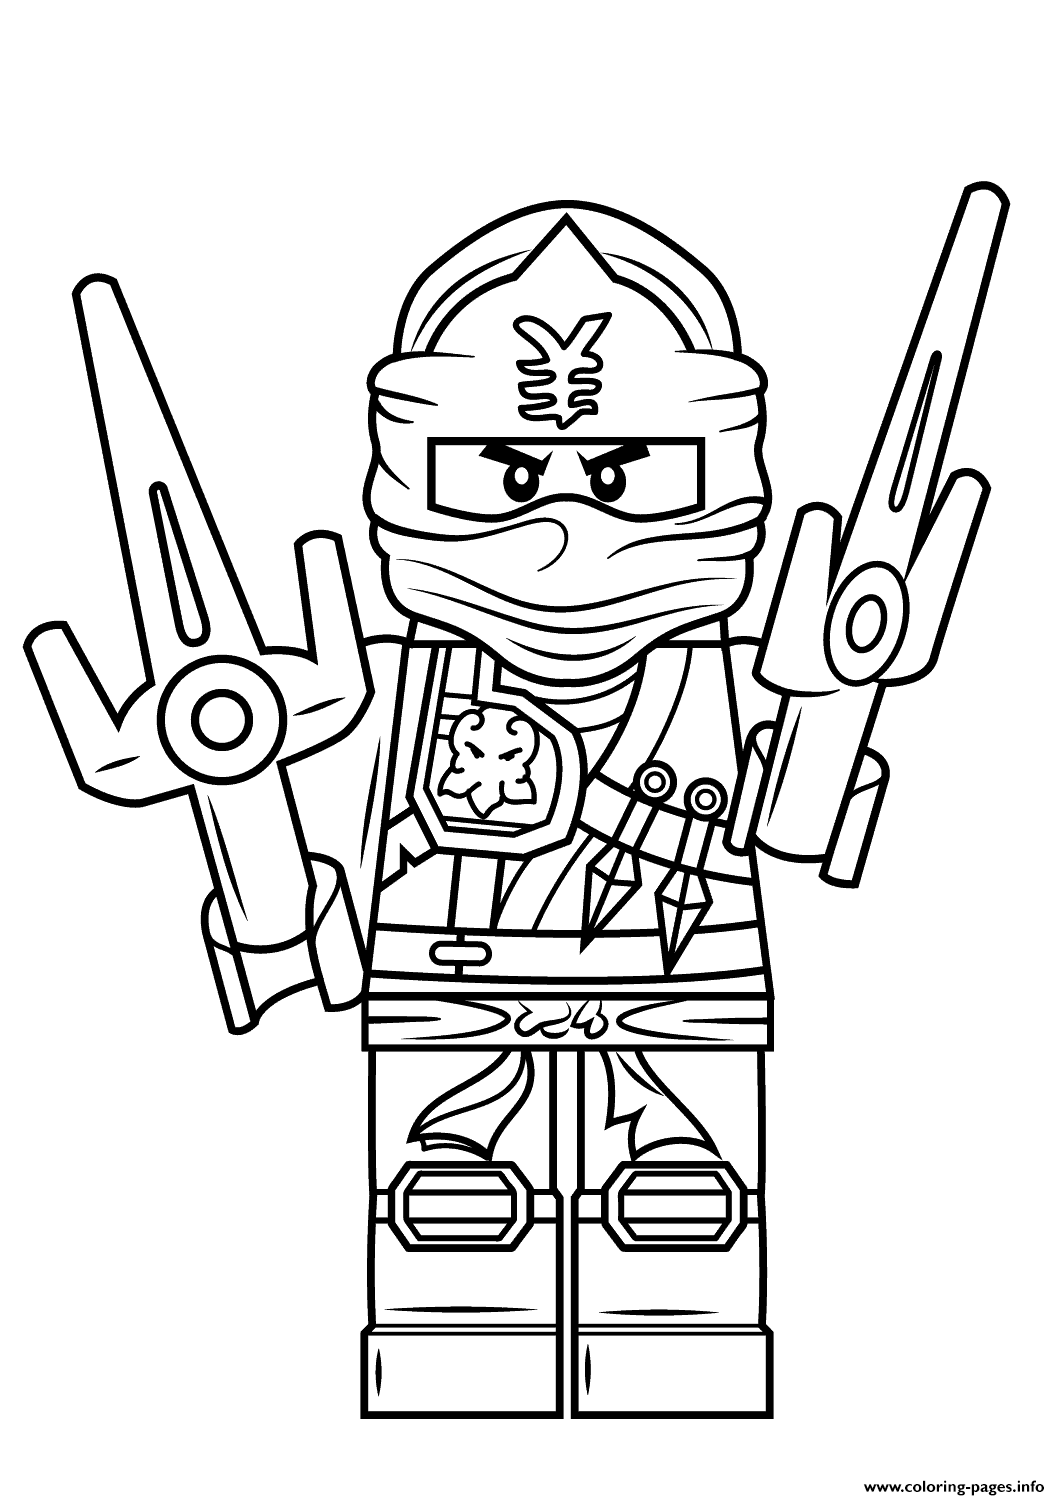 Lego Ninjago Jay Coloring Pages Printable